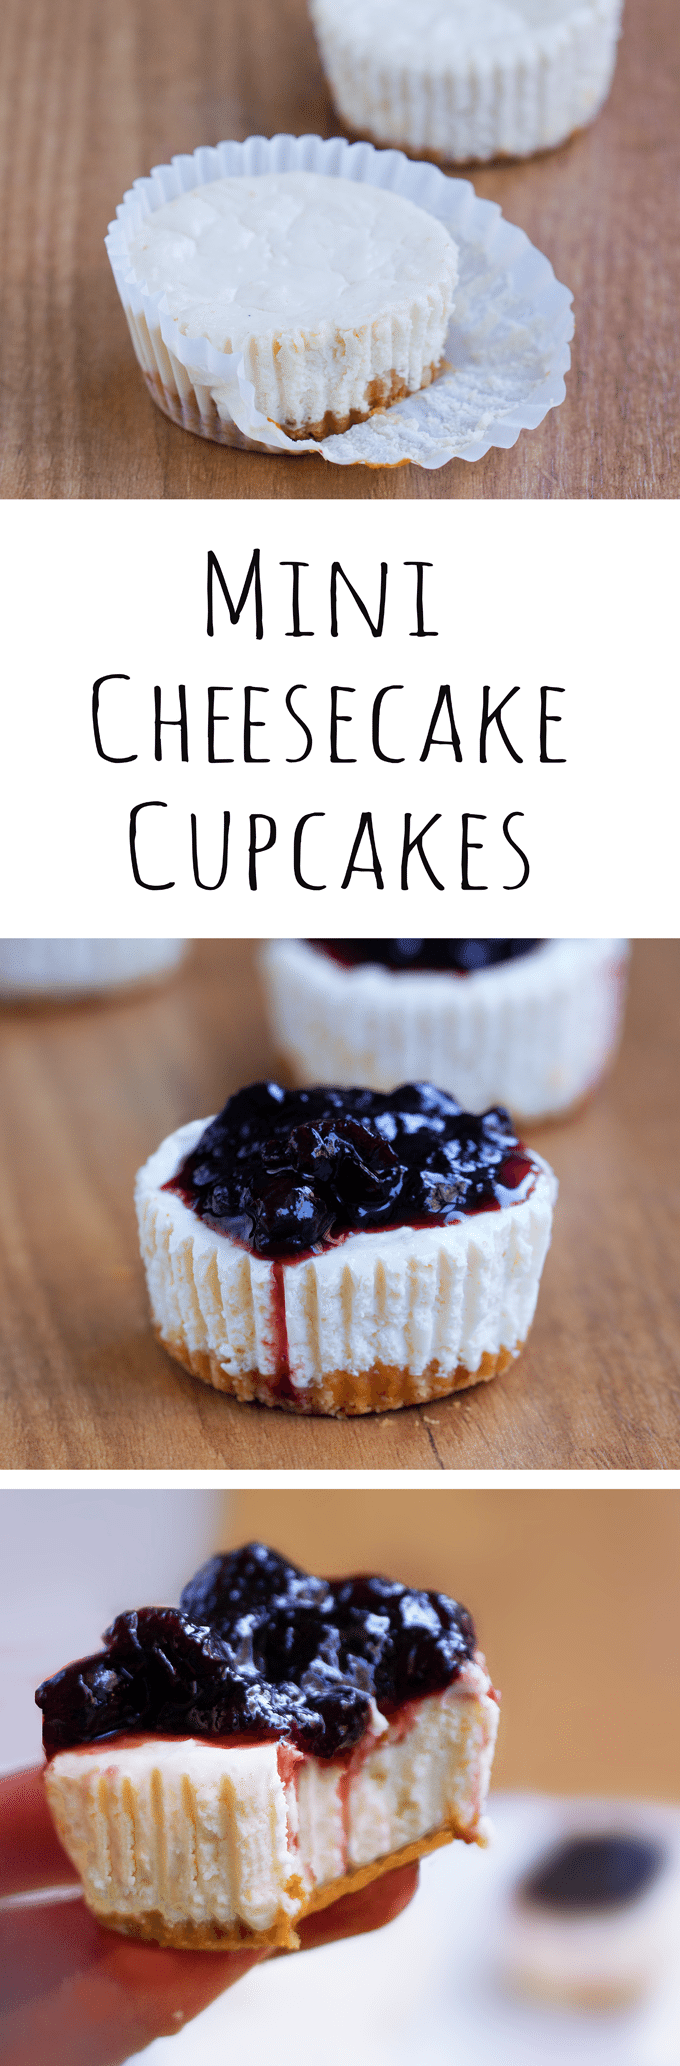 Cheesecake Cupcakes - Ingredients: 12 oz cream cheese, 1 cup yogurt, 1 tsp vanilla extract, 2 1/2 tbsp... Full recipe: https://chocolatecoveredkatie.com @choccoveredkt